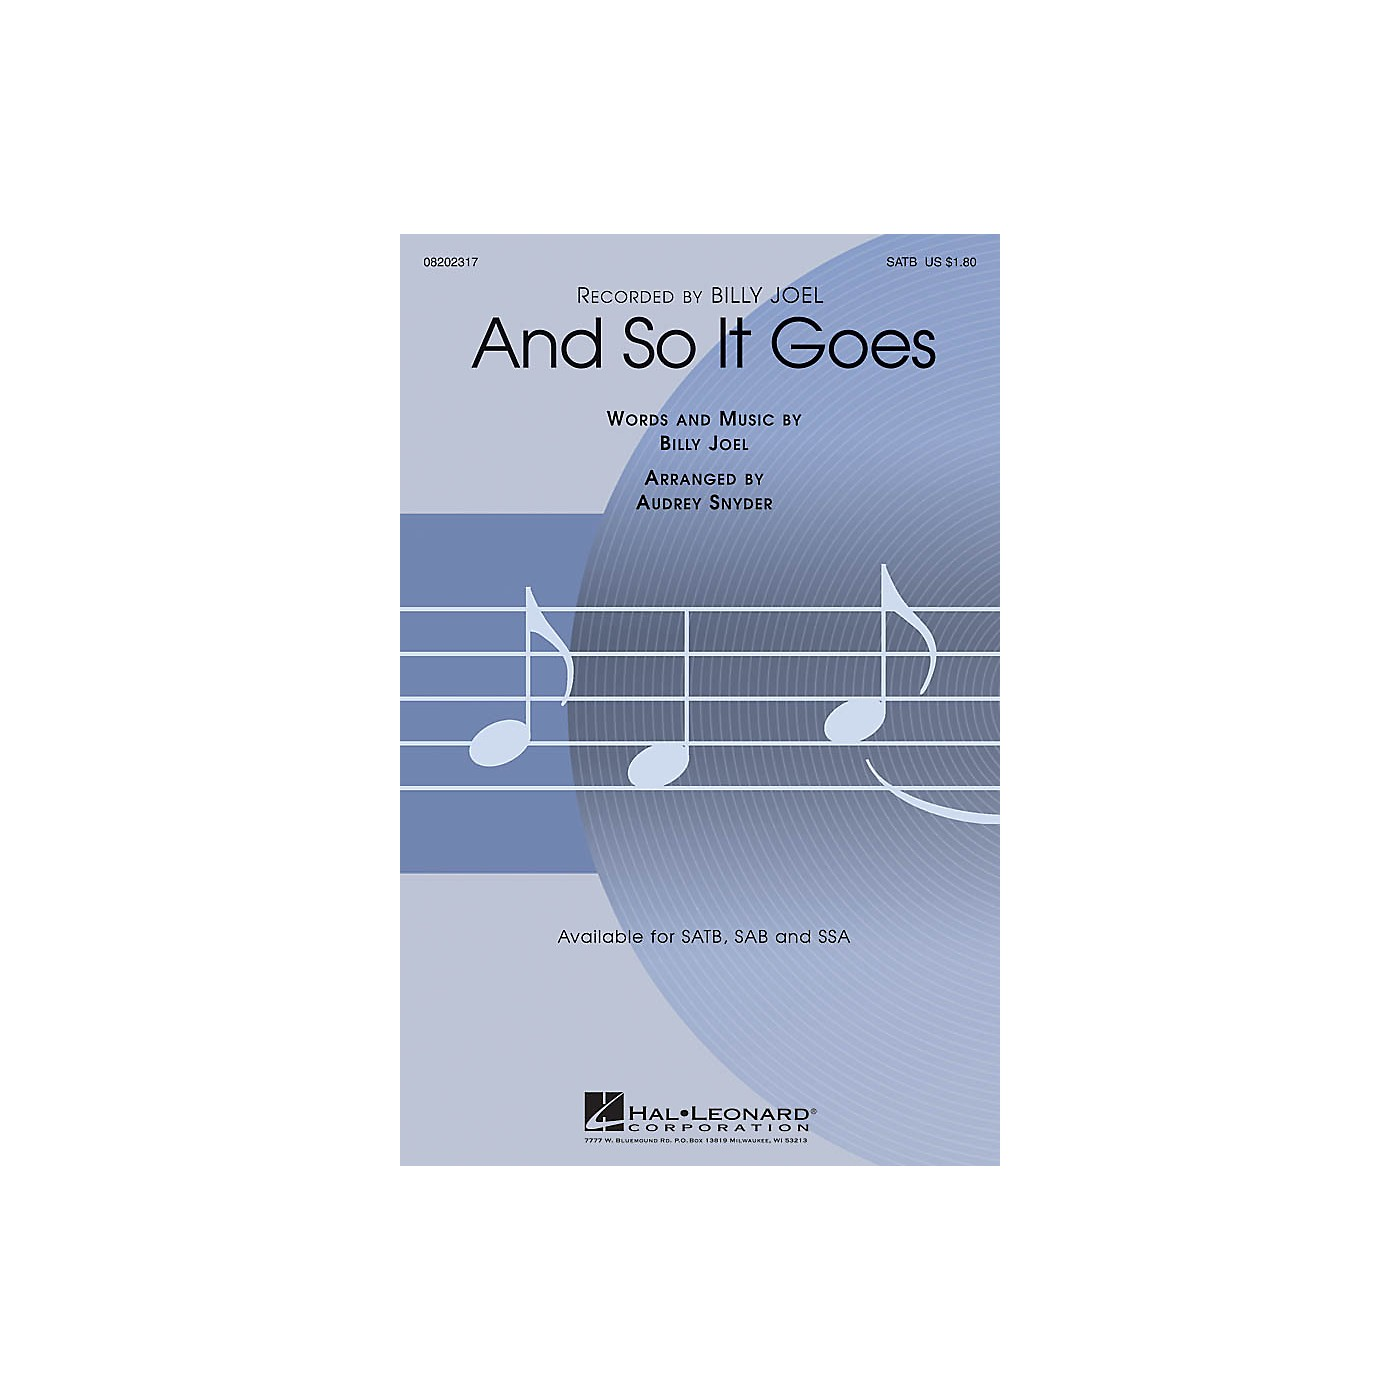 Hal Leonard And So It Goes SATB by Billy Joel arranged by Audrey Snyder thumbnail